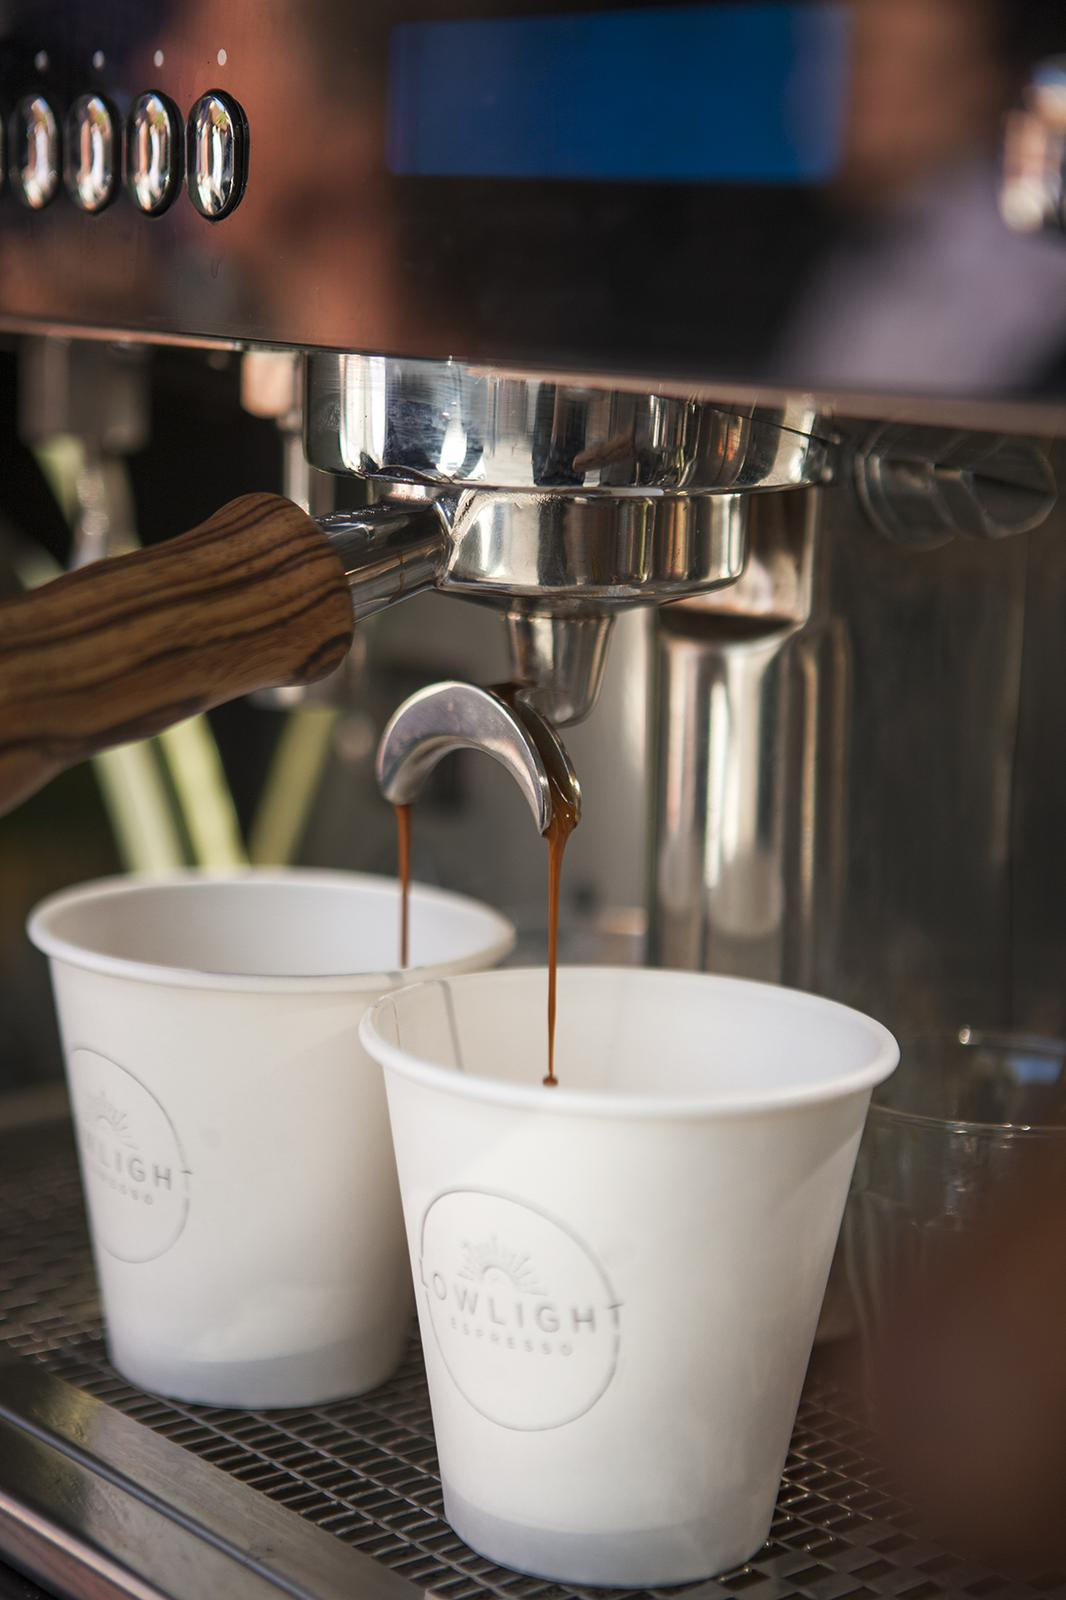 Dating site coffee in Perth